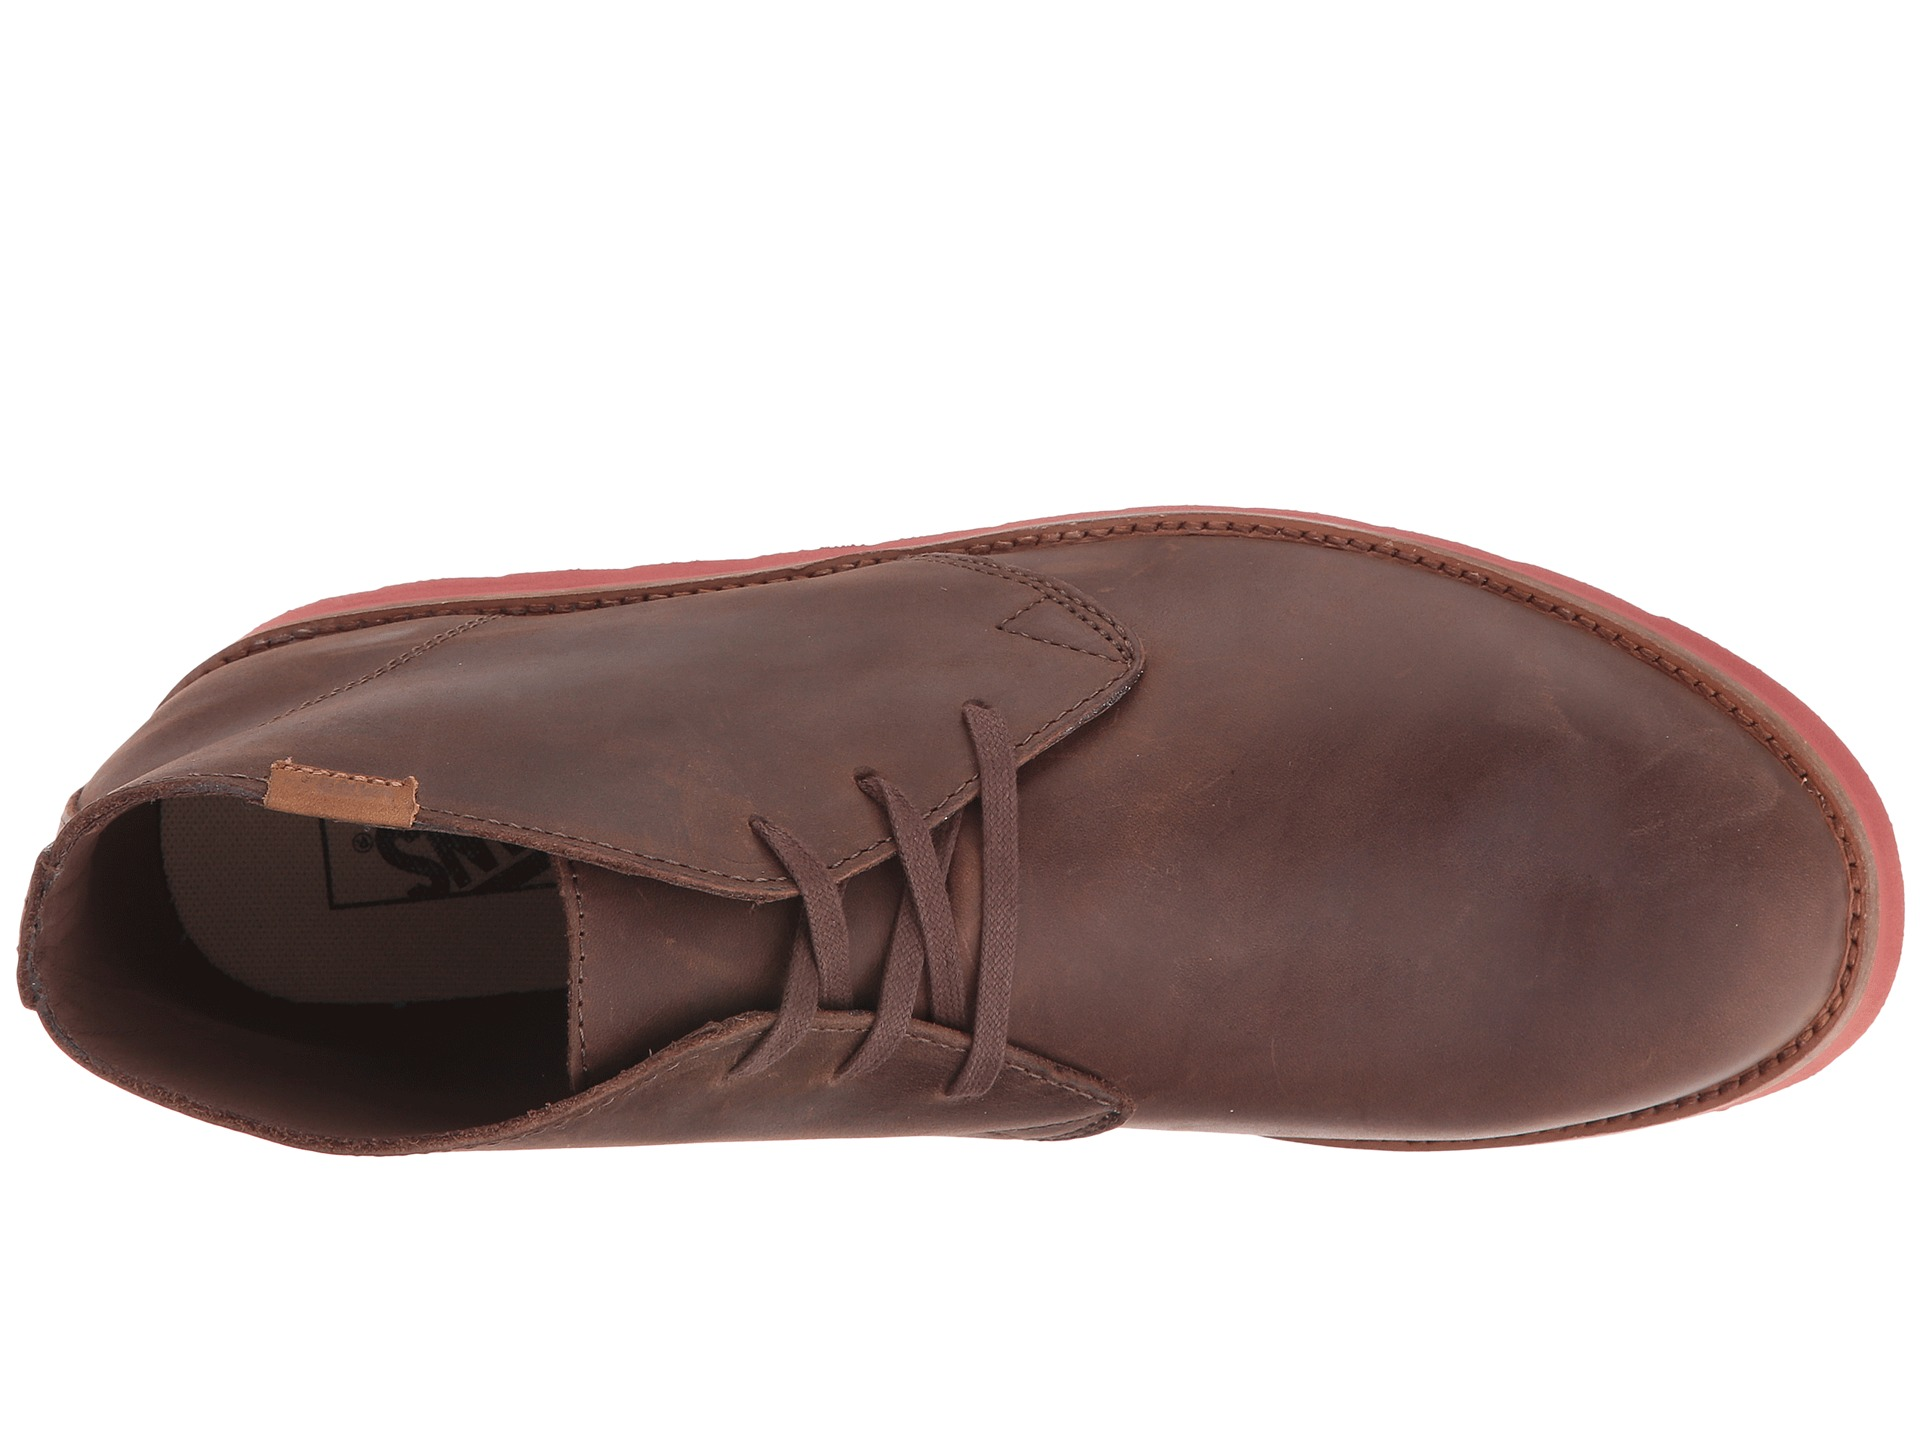 How To Fix Burnt Leather Shoes